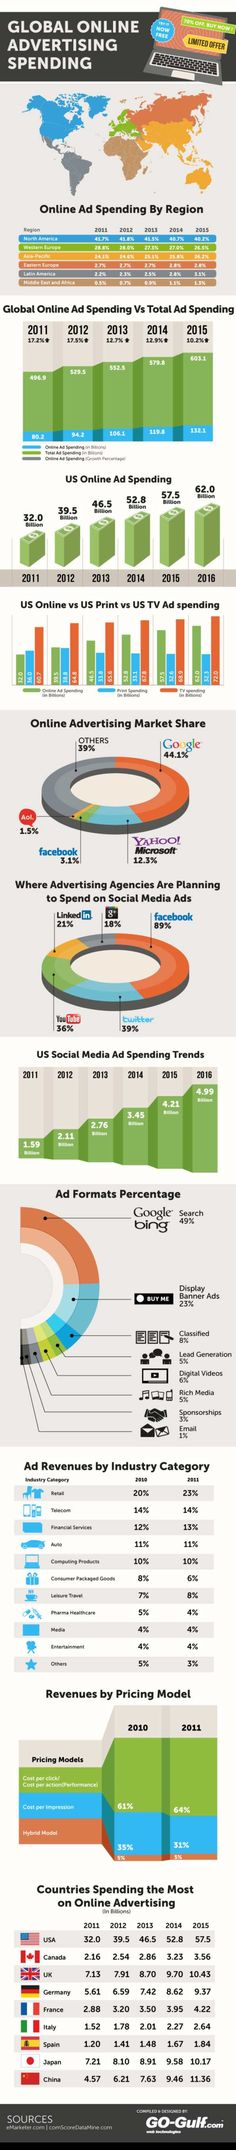 Digital accounts for 24.6% in APAC #Adspend http://www.i-programmer.info/news/81-web-general/4208-online-ad-spend.html